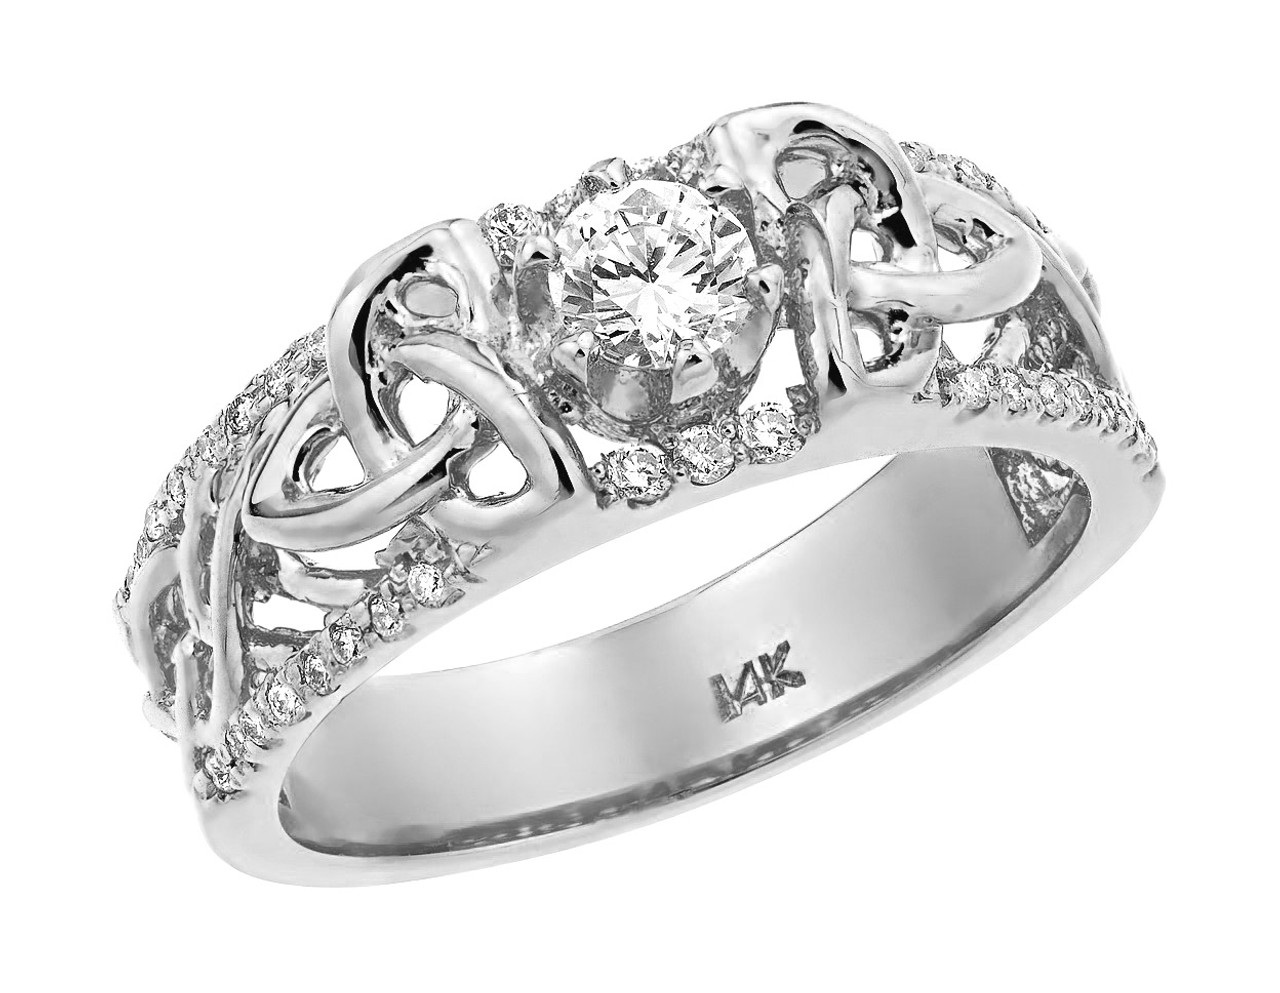 symbol diamond infinity love pinterest rings the style knot but wedding hidden ring square my engagement pin instead gorgeous infinite